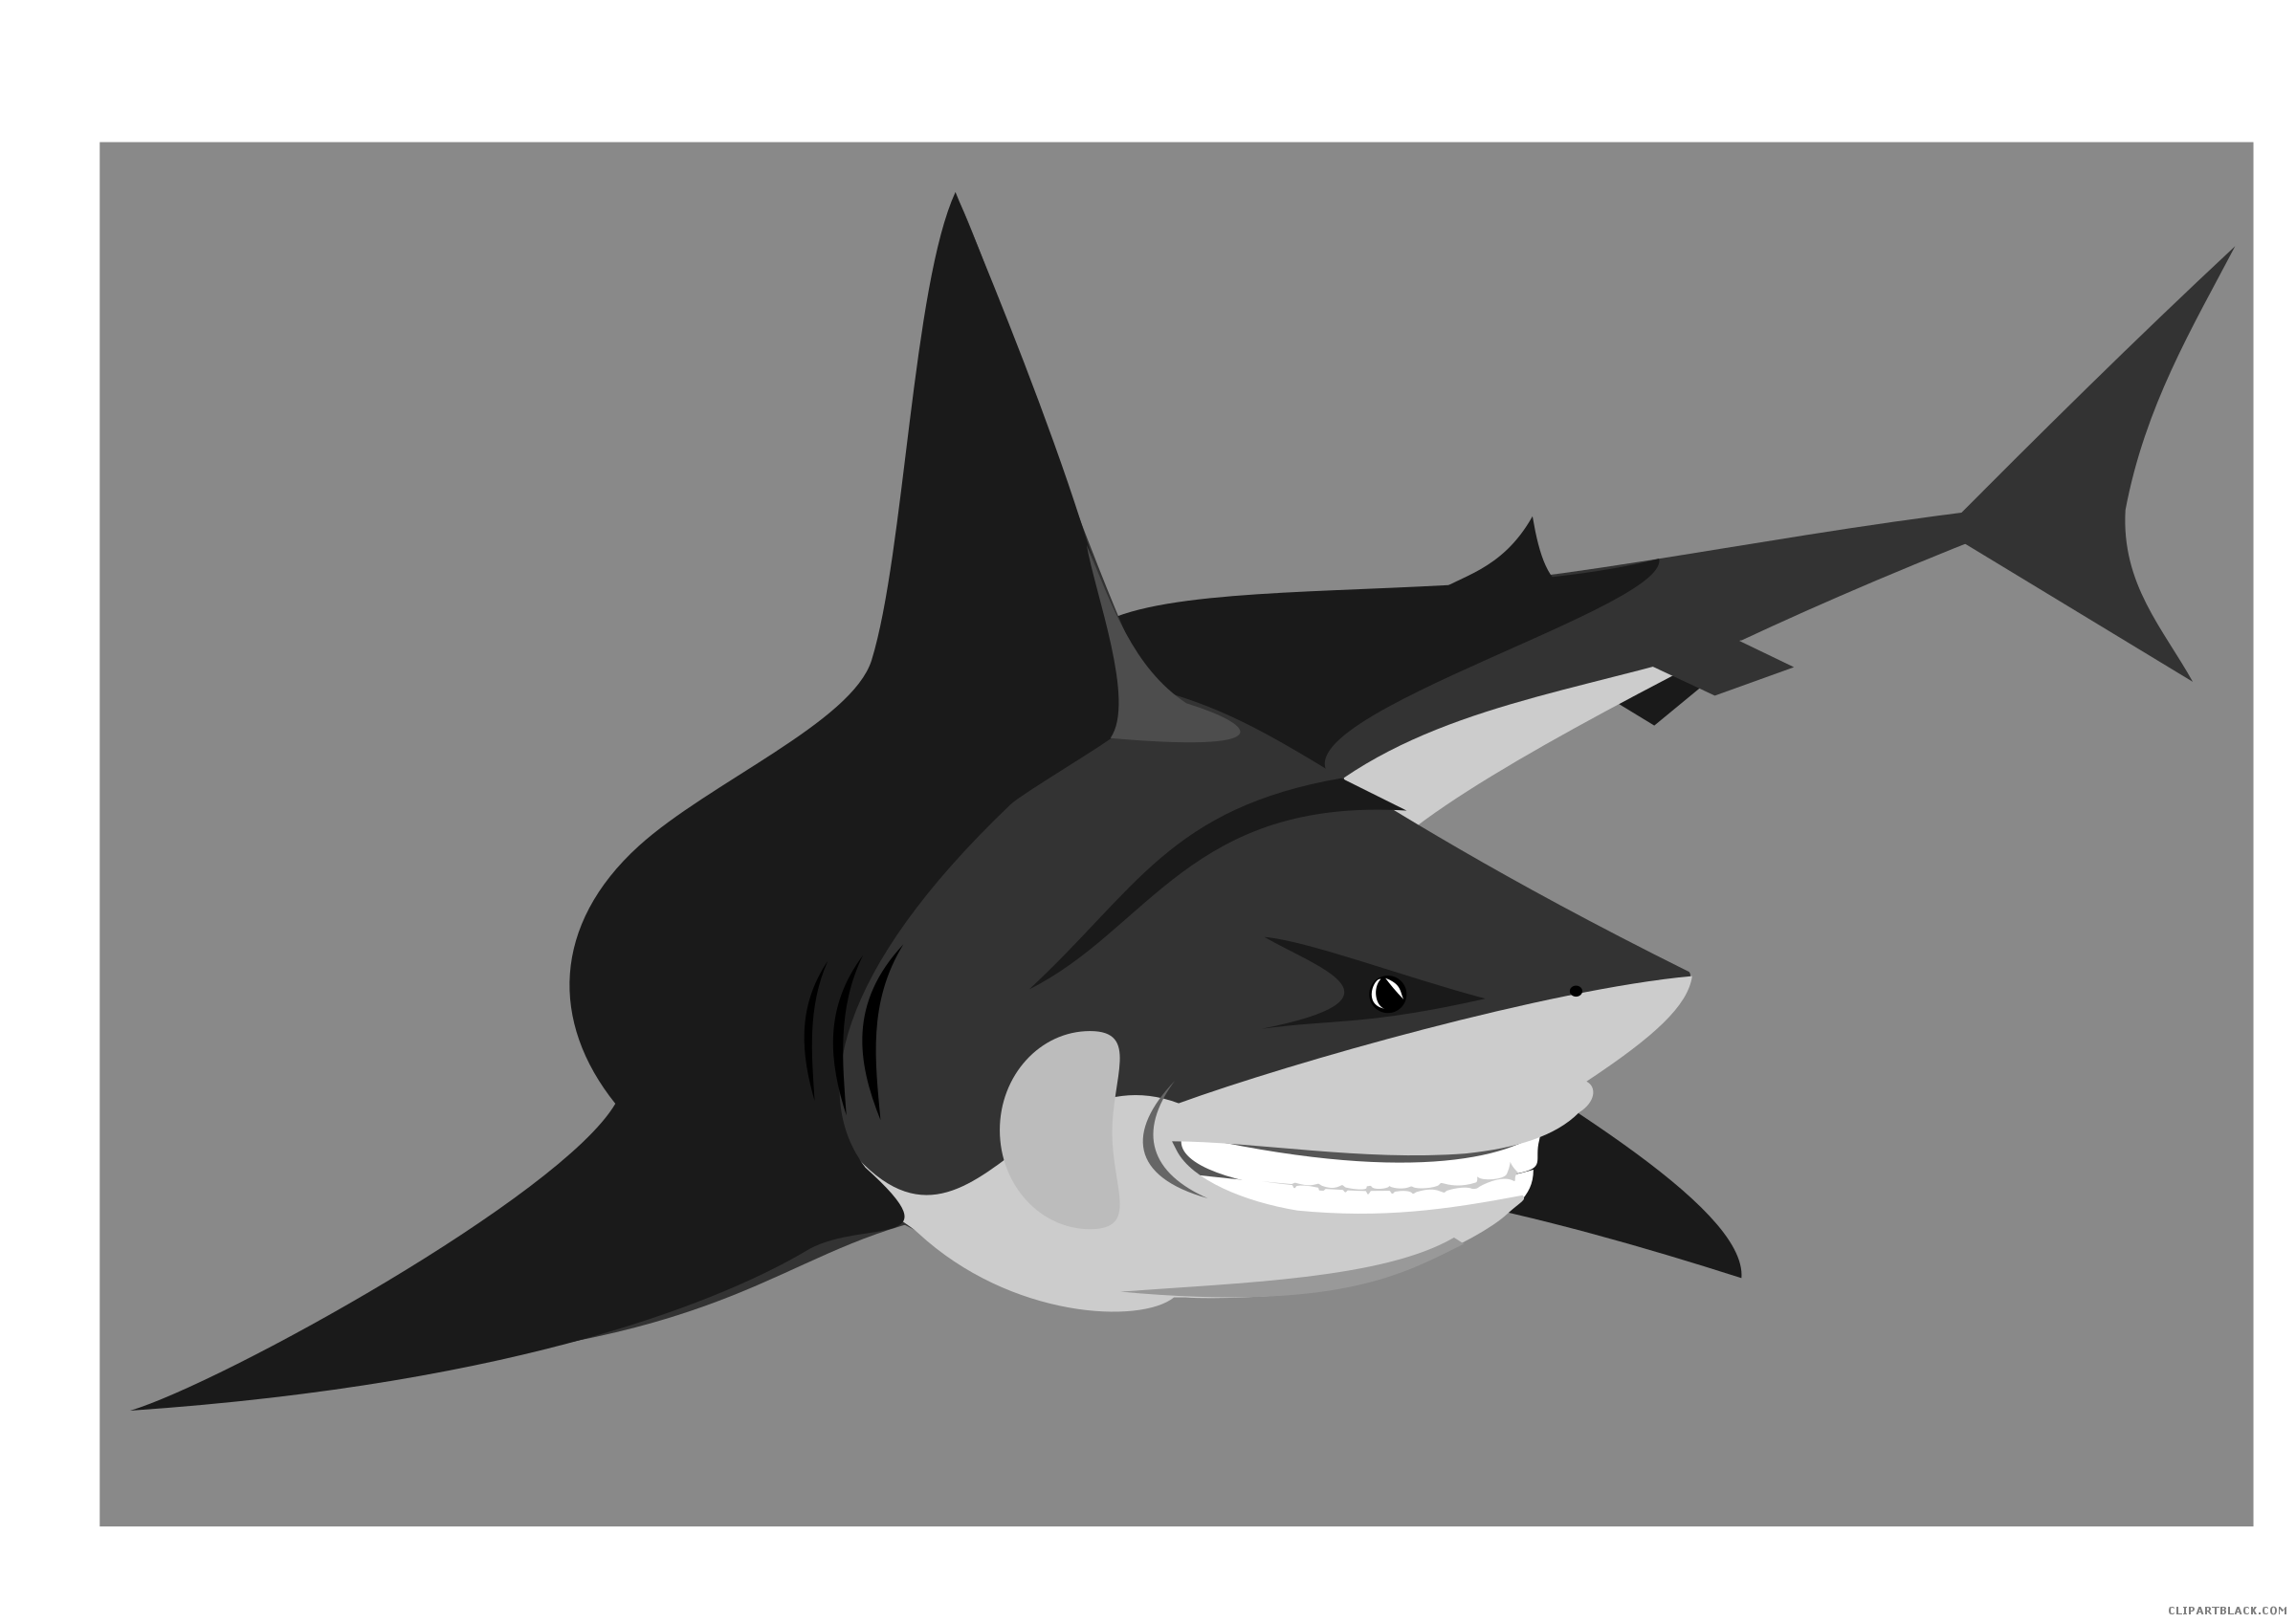 Yak clipart trainer. Friendly shark animal free